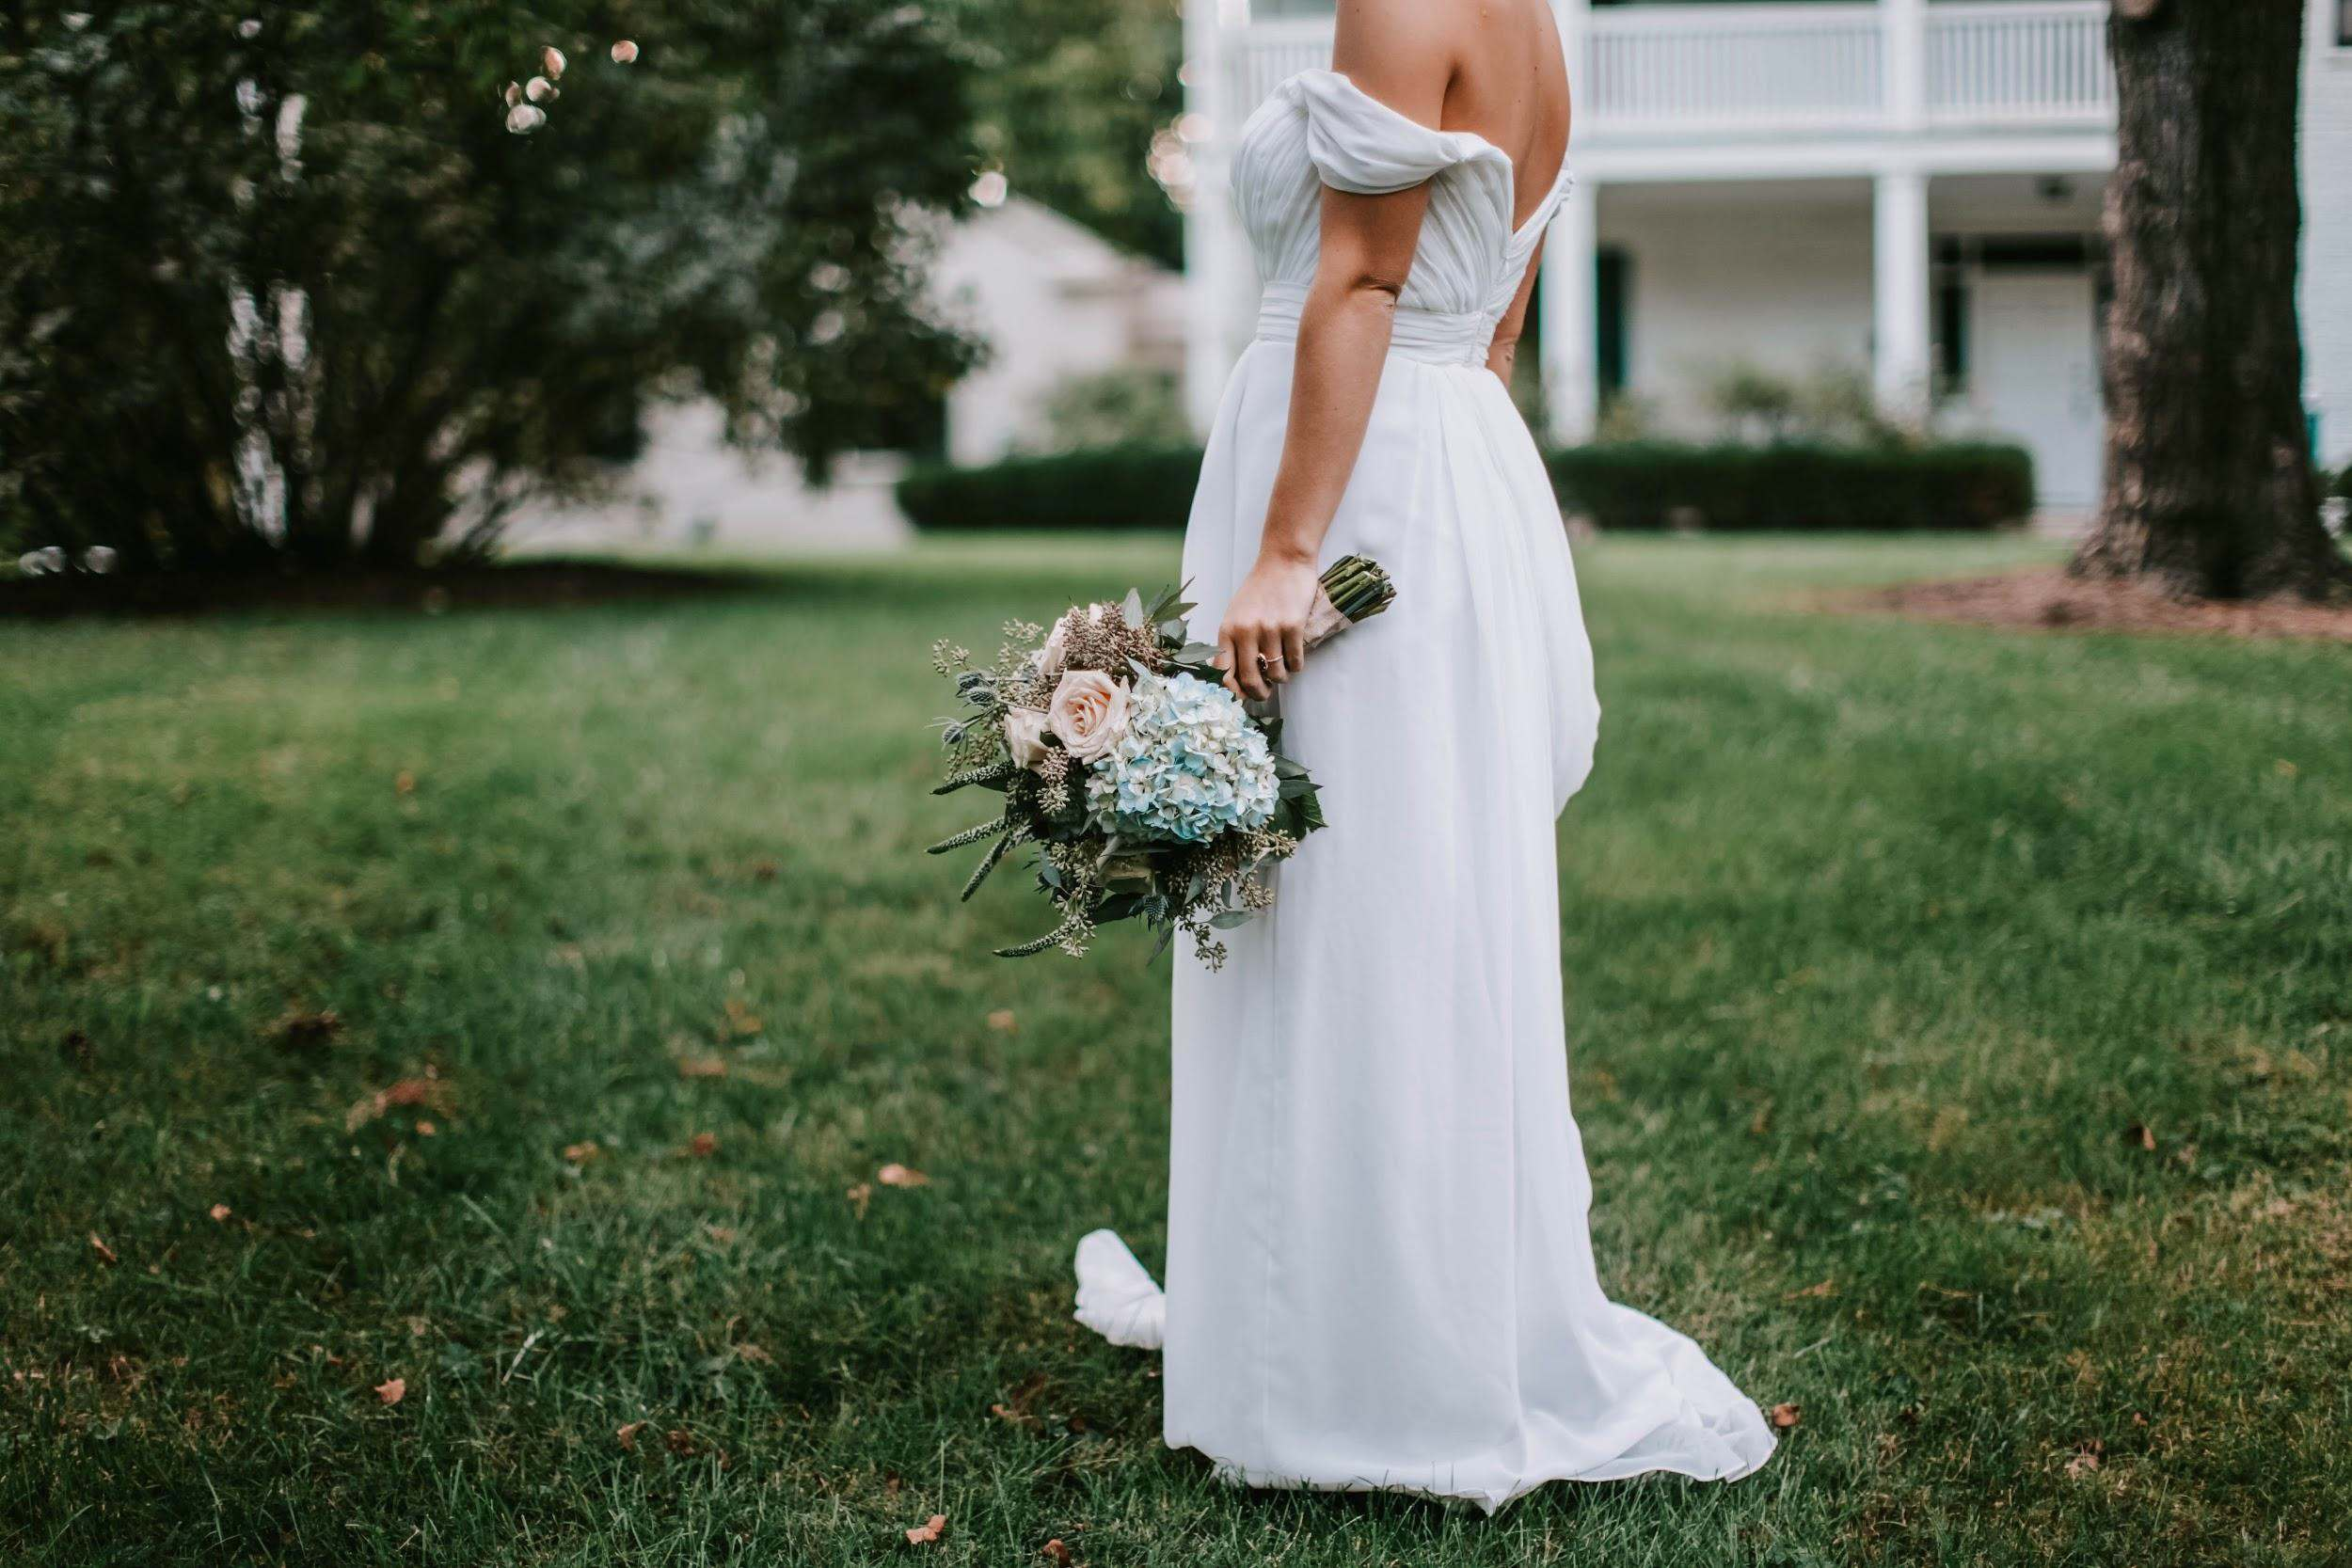 A Bride in an Off-Shoulder Wedding Dresses on the Grass